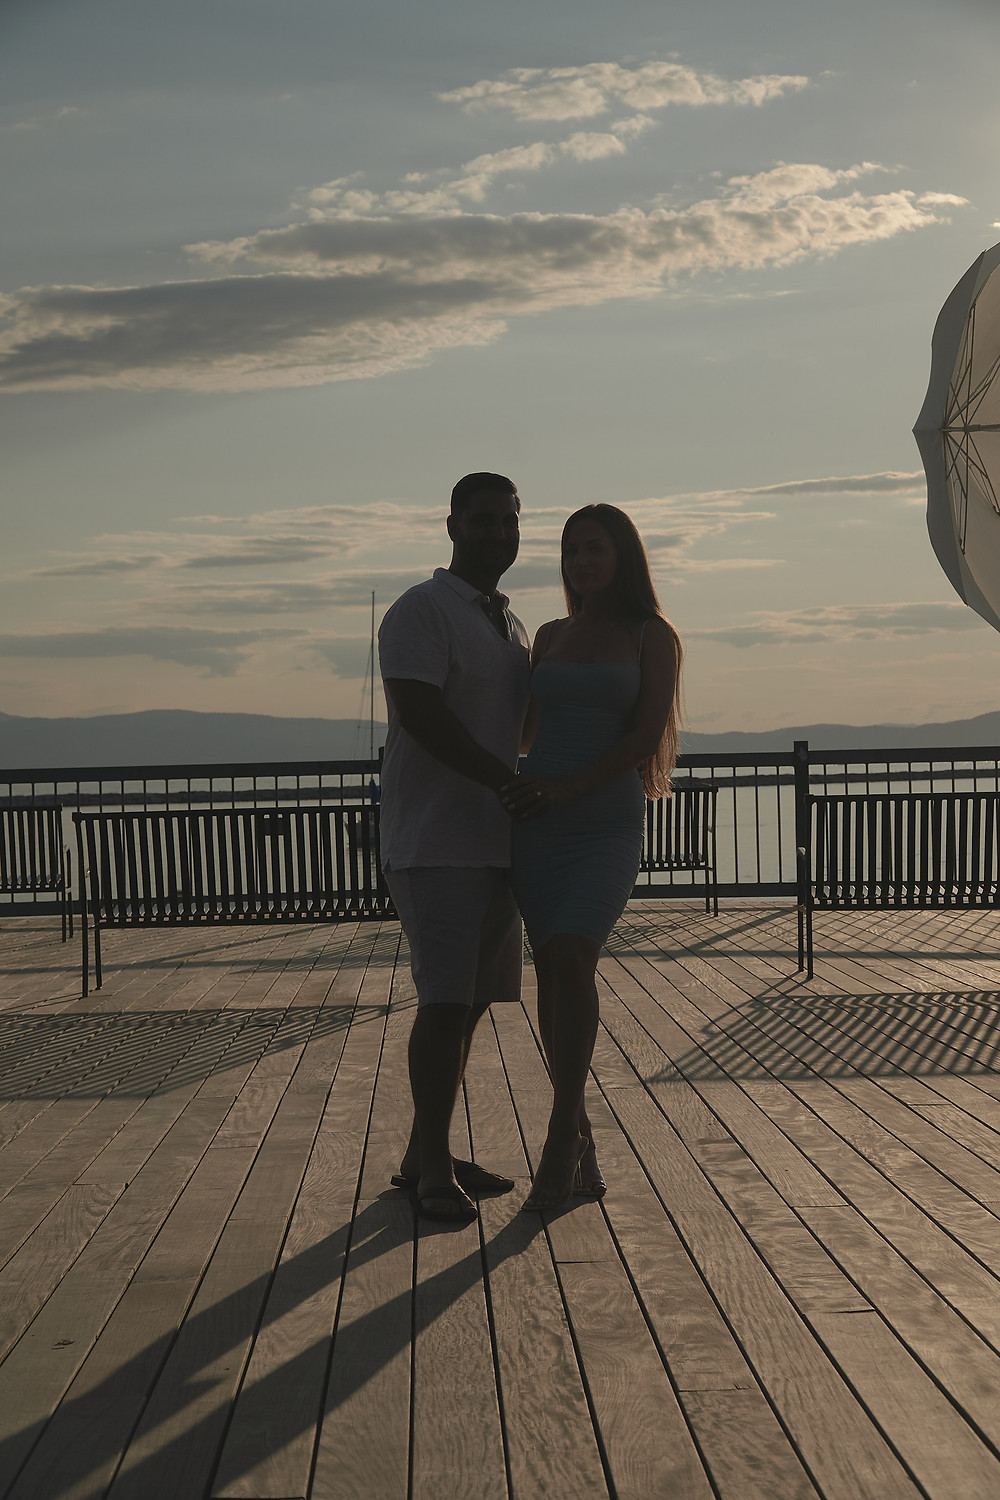 A couple drenched in shadows stands on a pier. In the upper right hand corner you can see a flash umbrella that is dark.